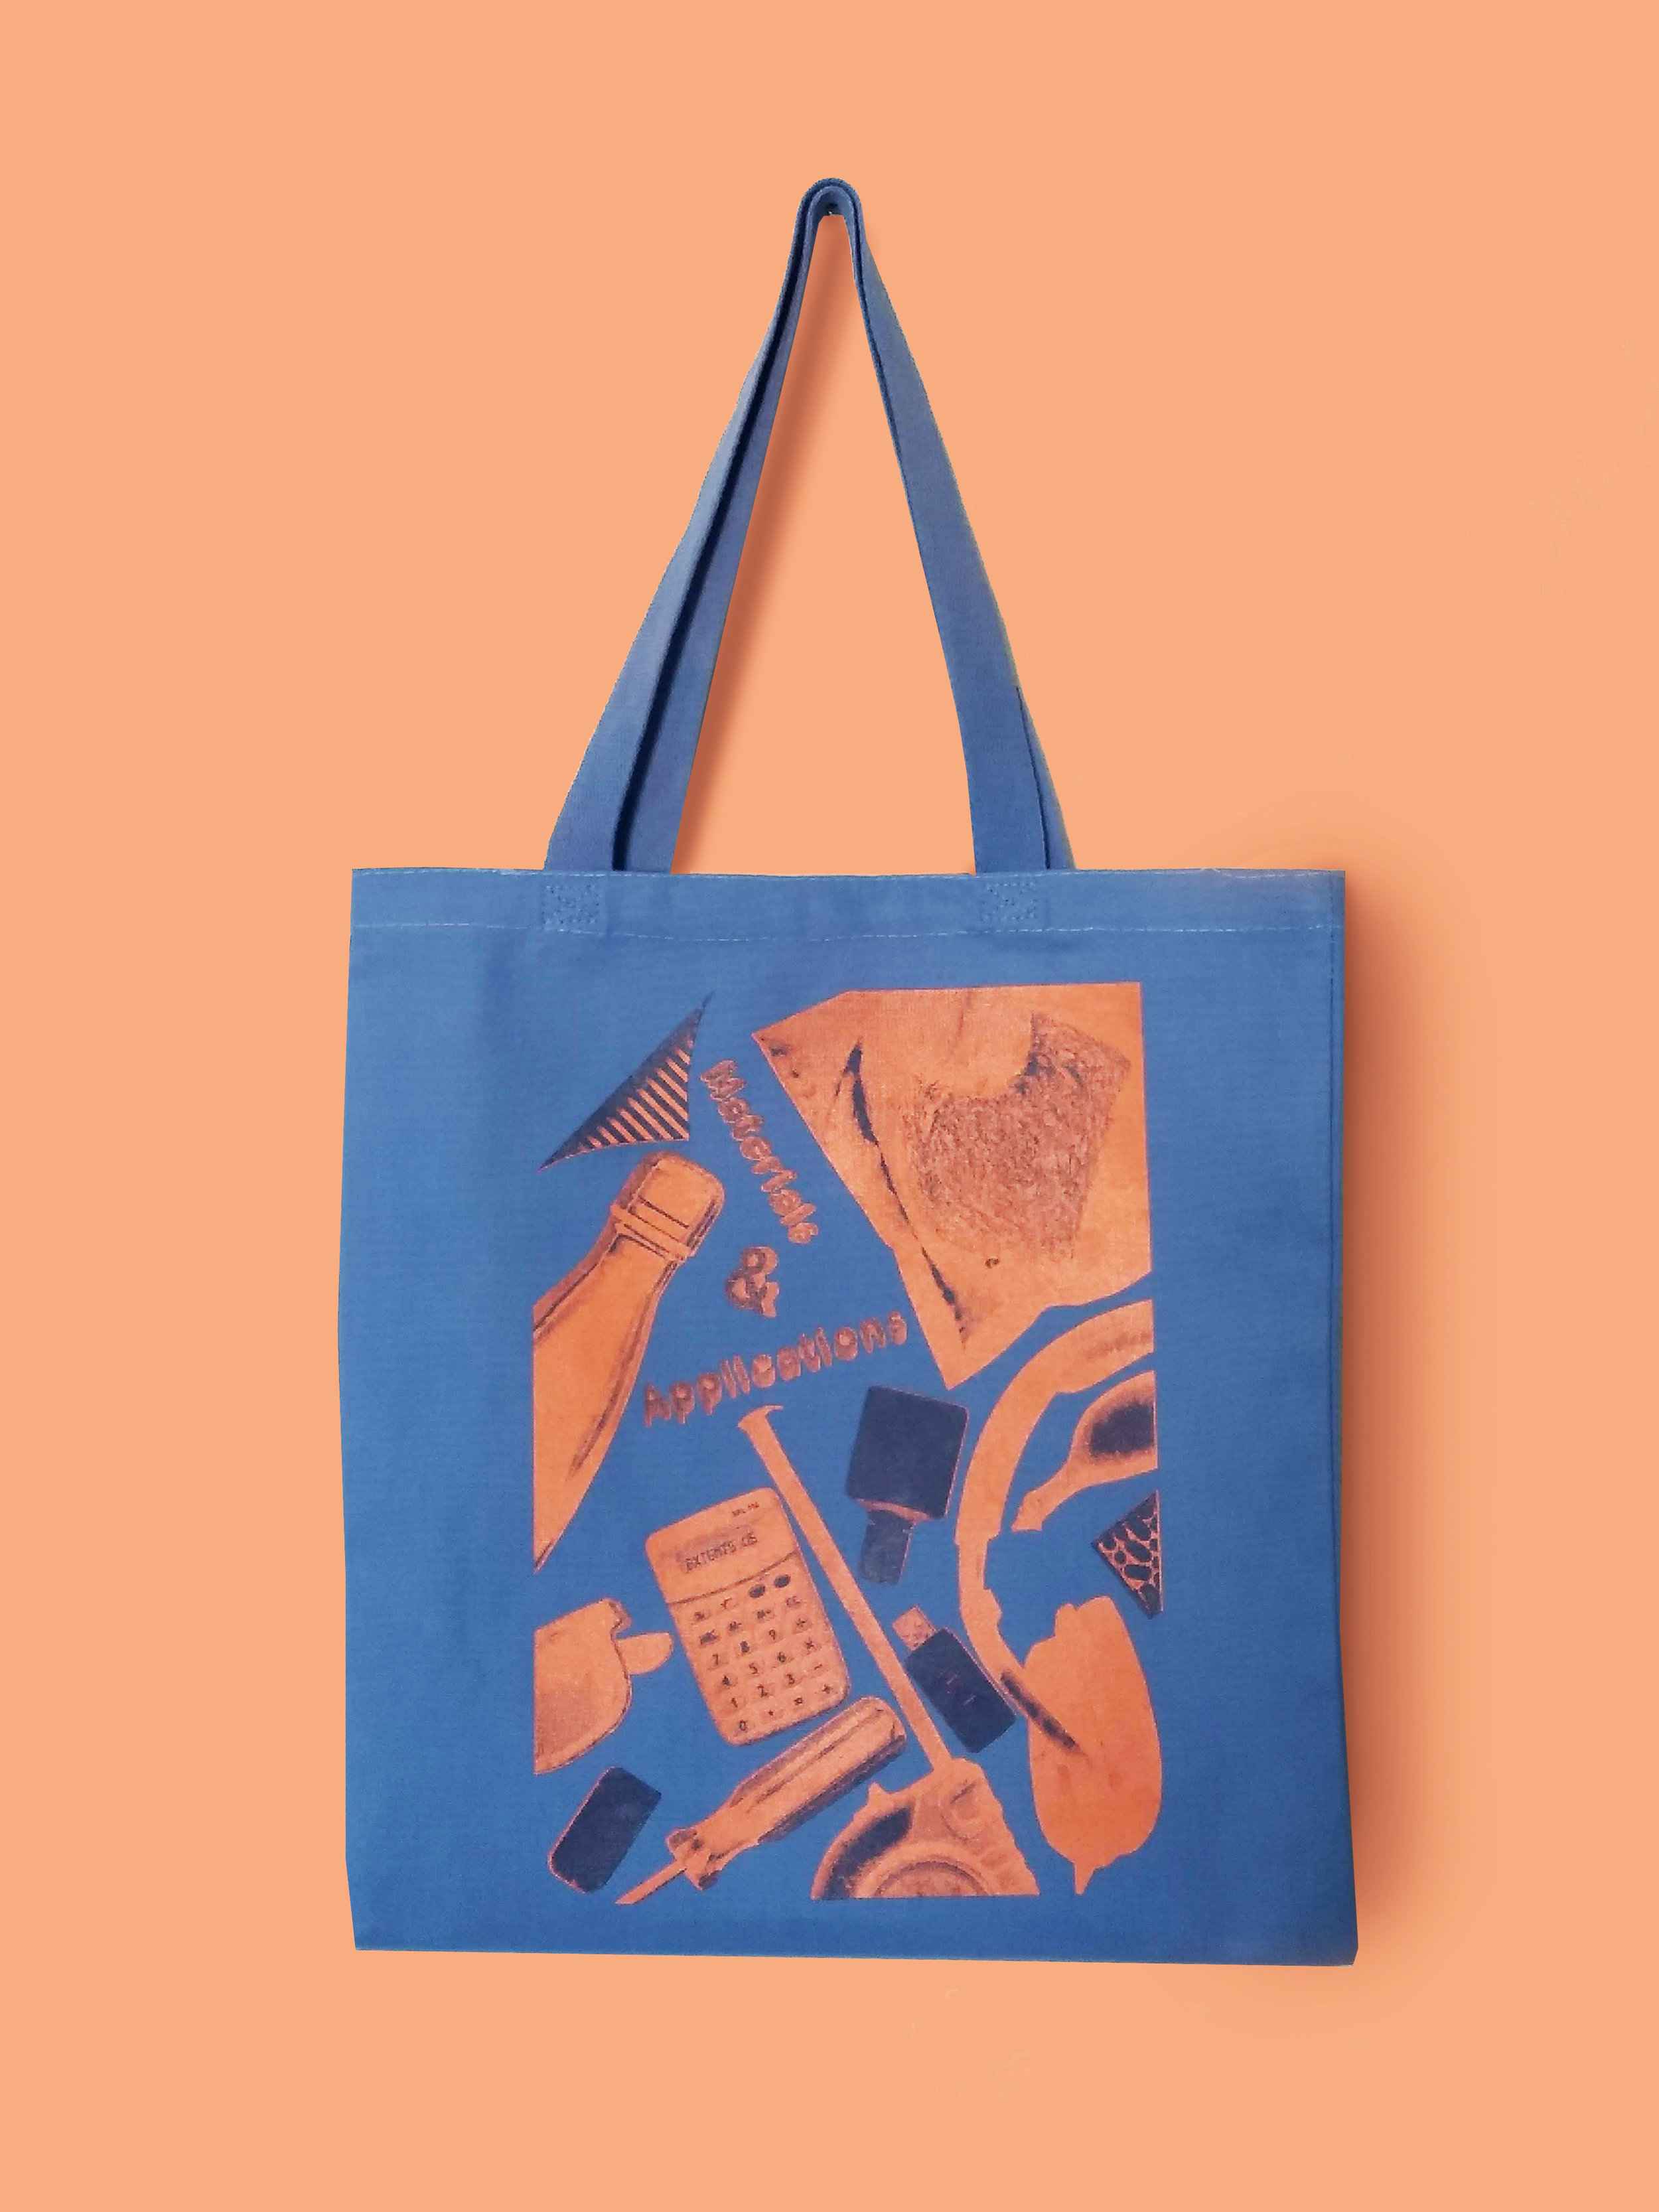 2019 Special Edition Totes by EXTENTS - $20.00Our 2019 totes are in! 🎉Designed by architect team EXTENTS (@extents.us), the scanned image on the front captures the collection of old and new technologies that might inhabit the bag of an aspiring architect or maker.Purchase